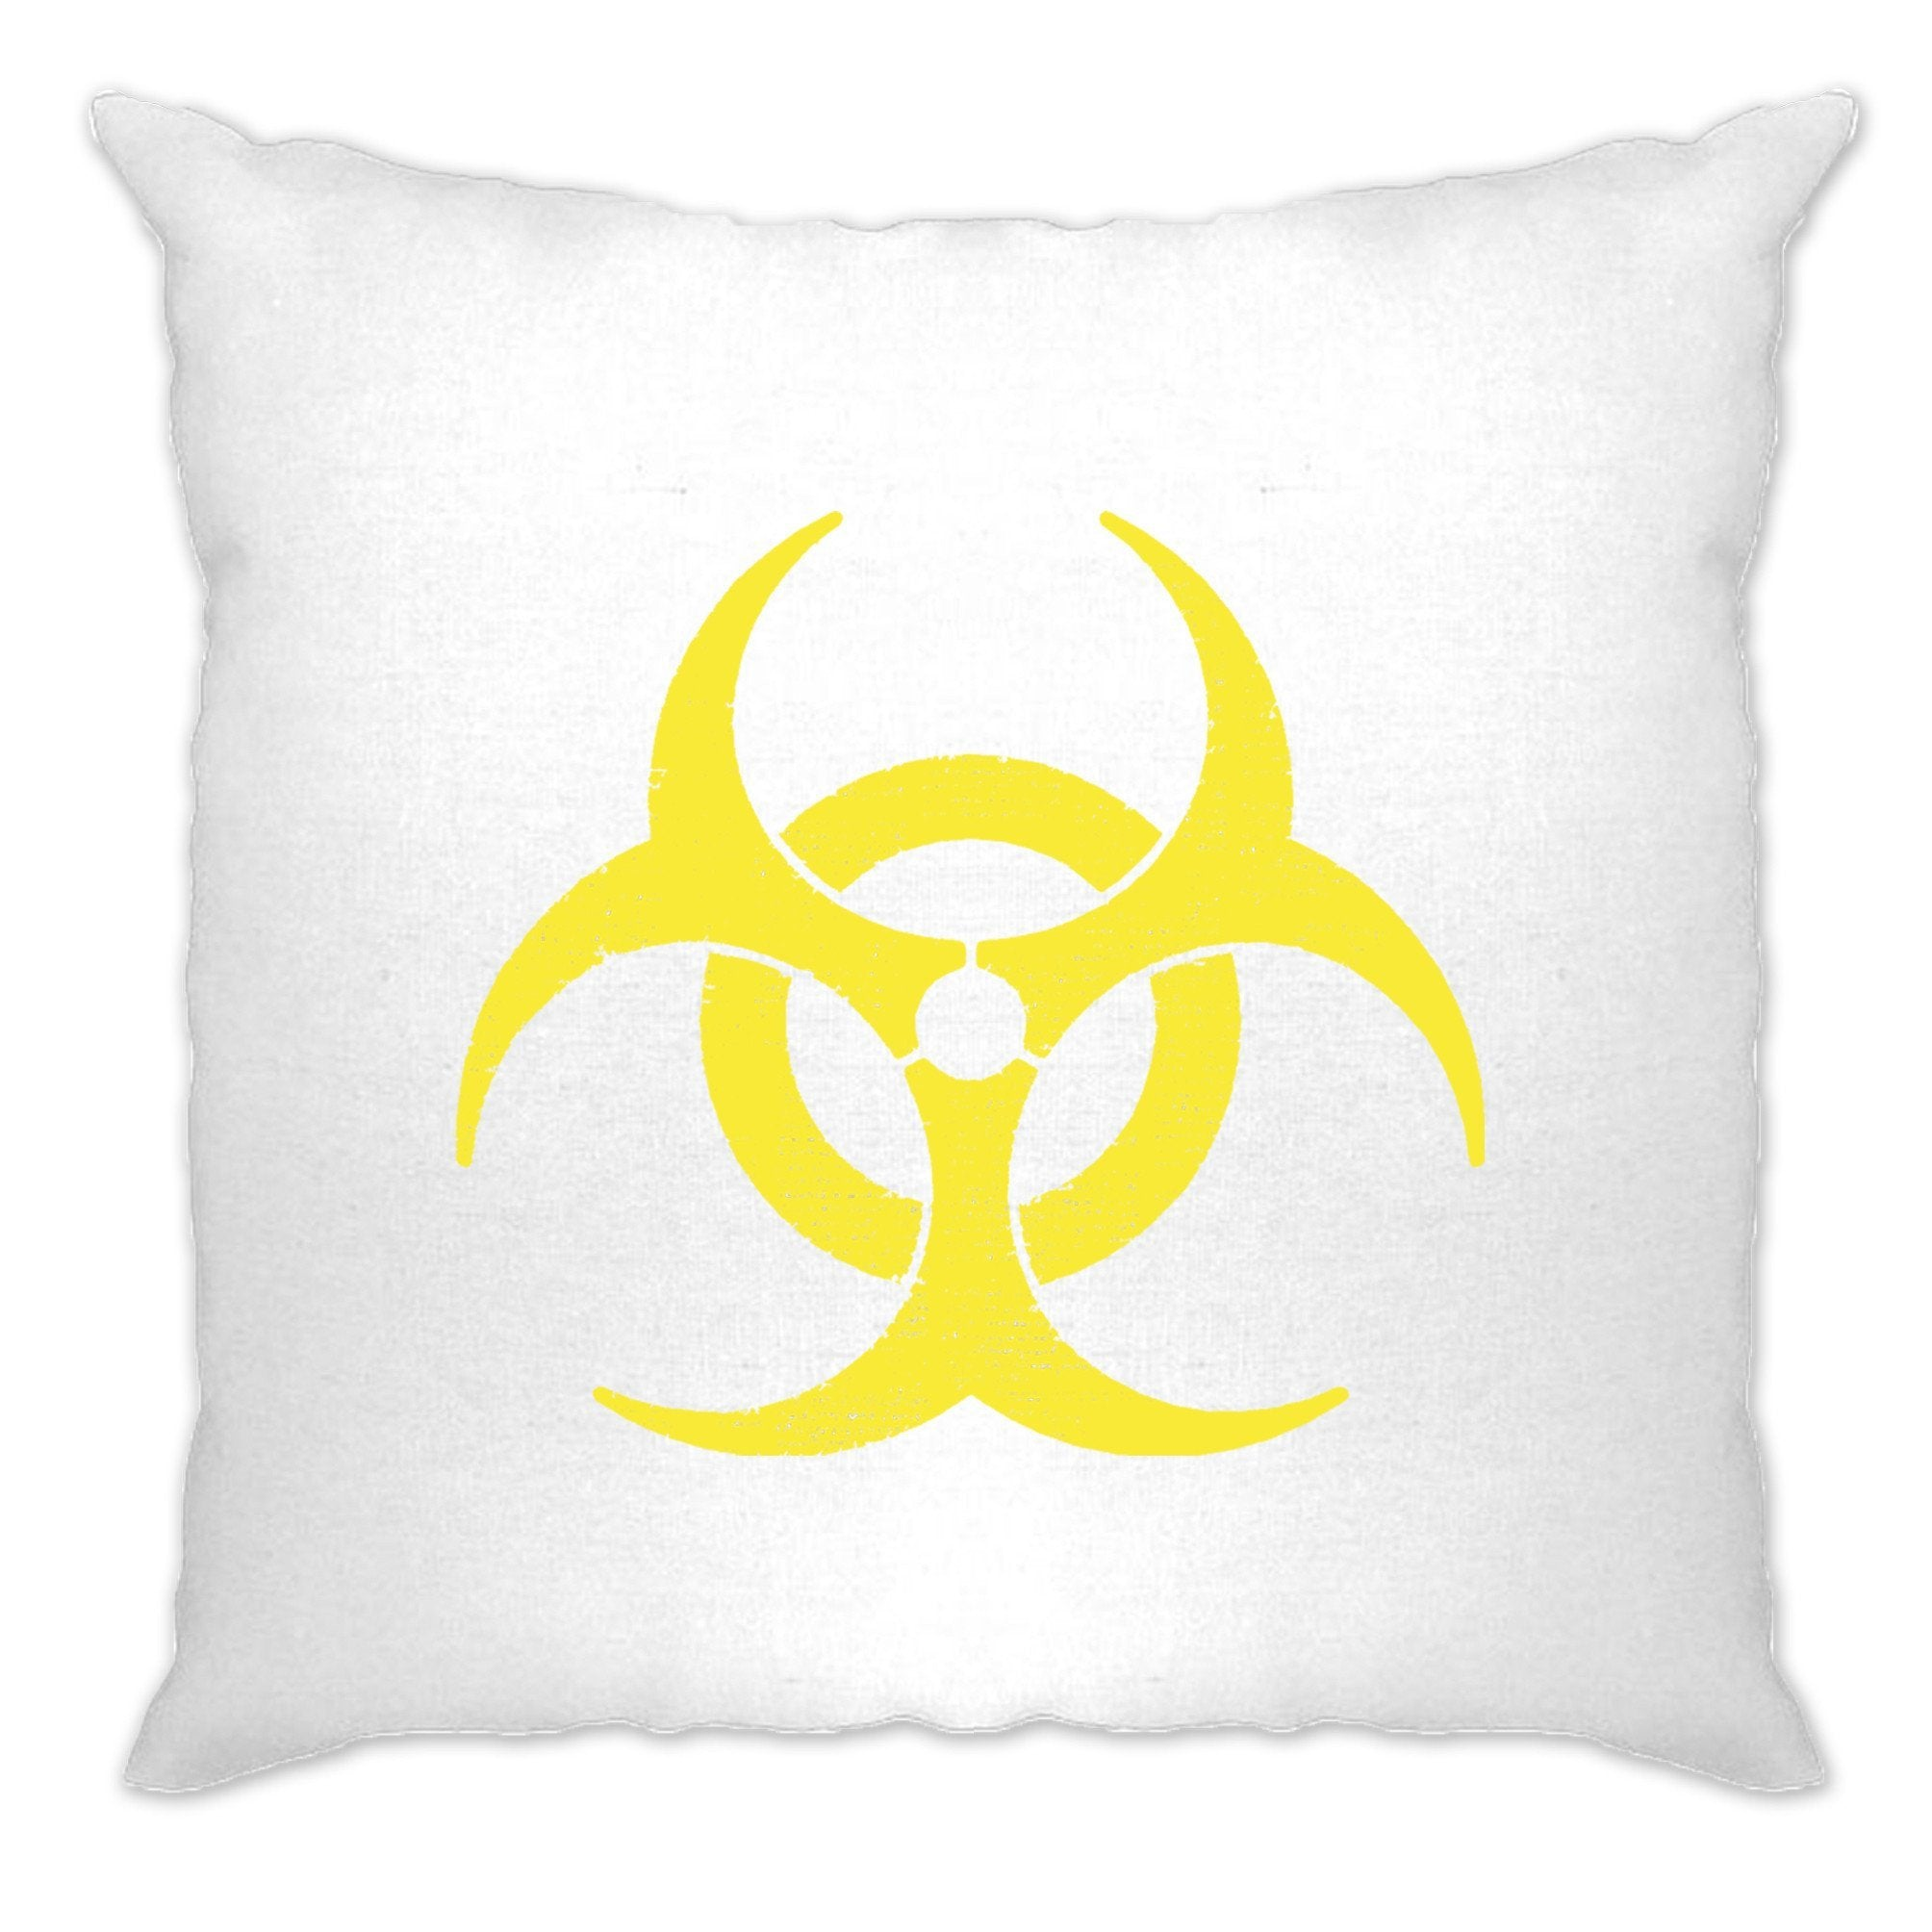 Warning Logo Cushion Cover Biohazard Symbol